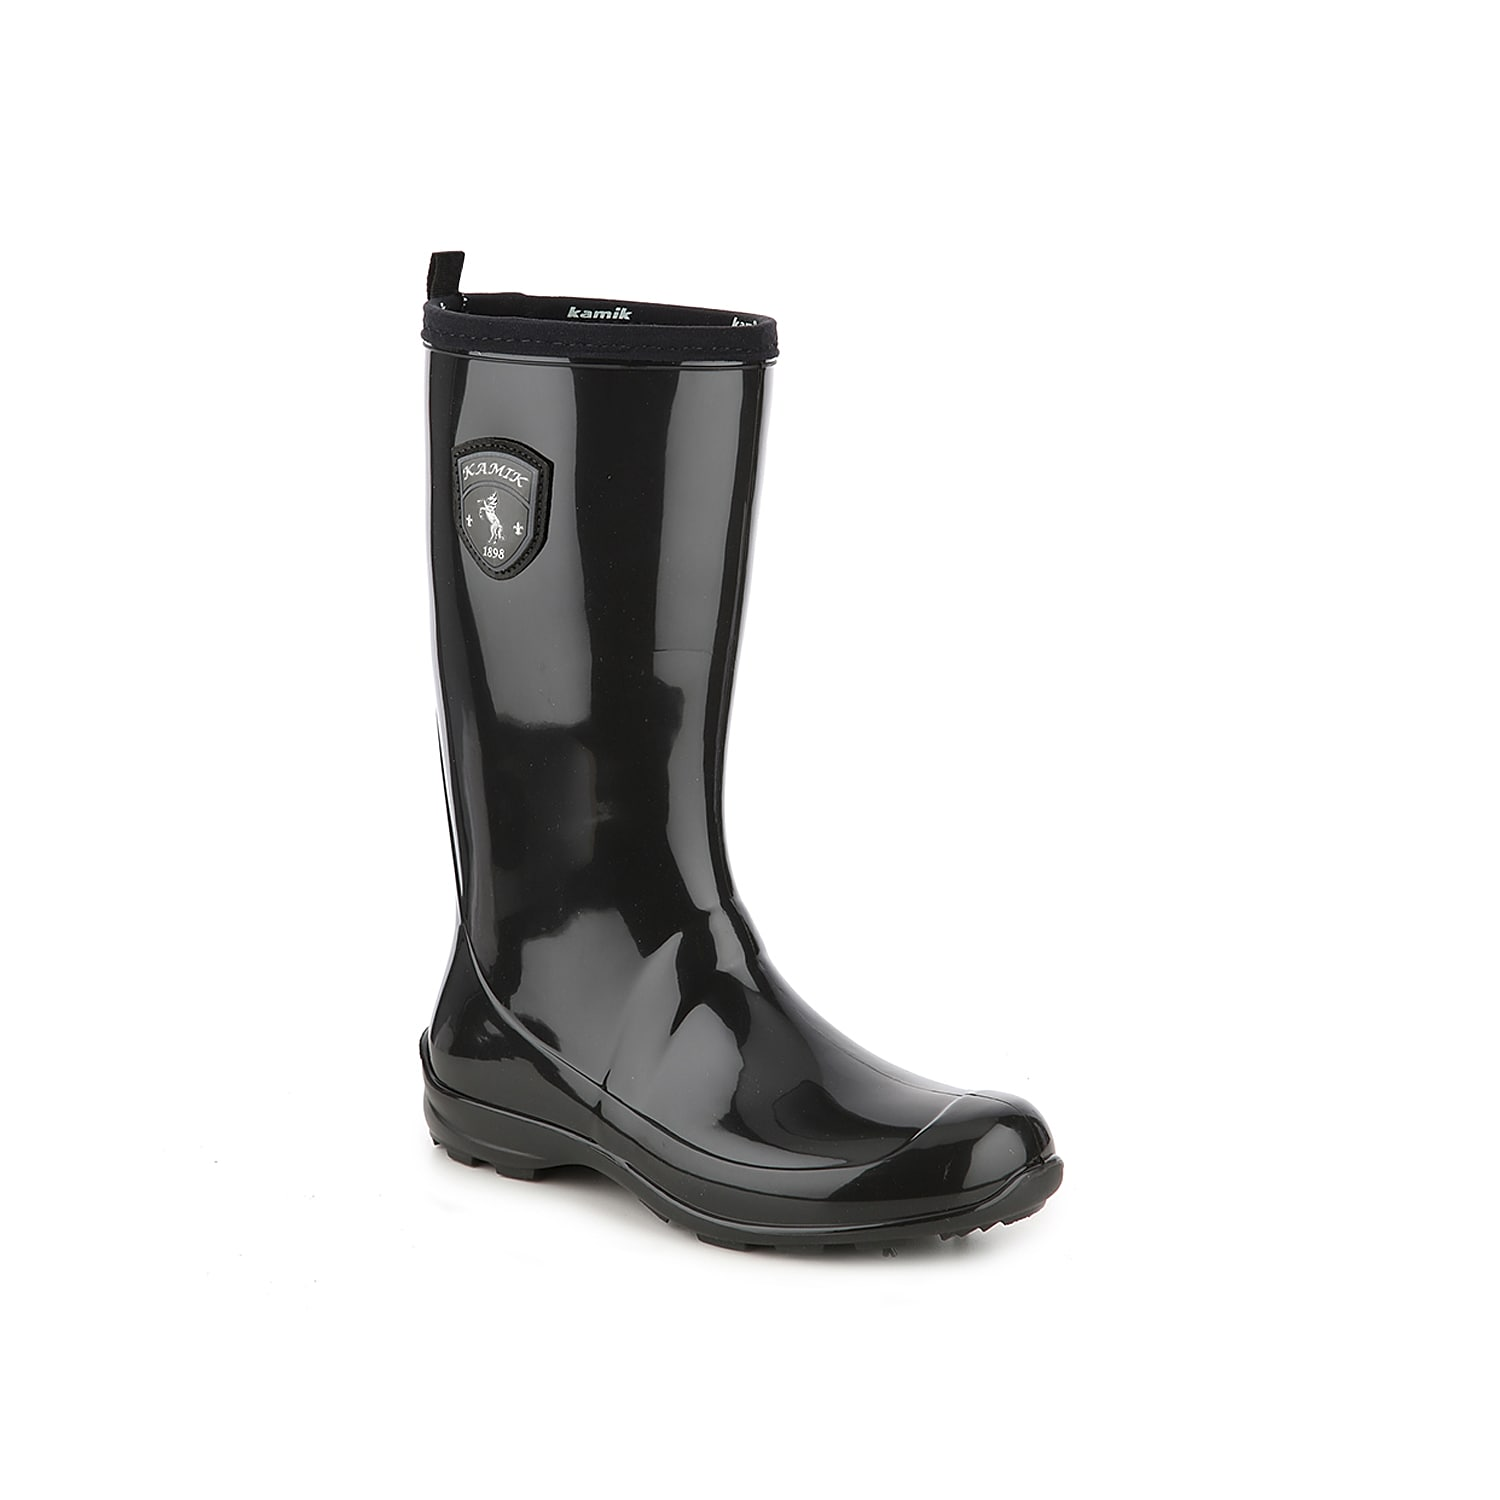 Keep your style sleek even when it\\\'s raining in the Marina rain boot from Kamik. A waterproof rubber construction and traction sole will keep you stable and dry! Click here for Boot Measuring Guide.